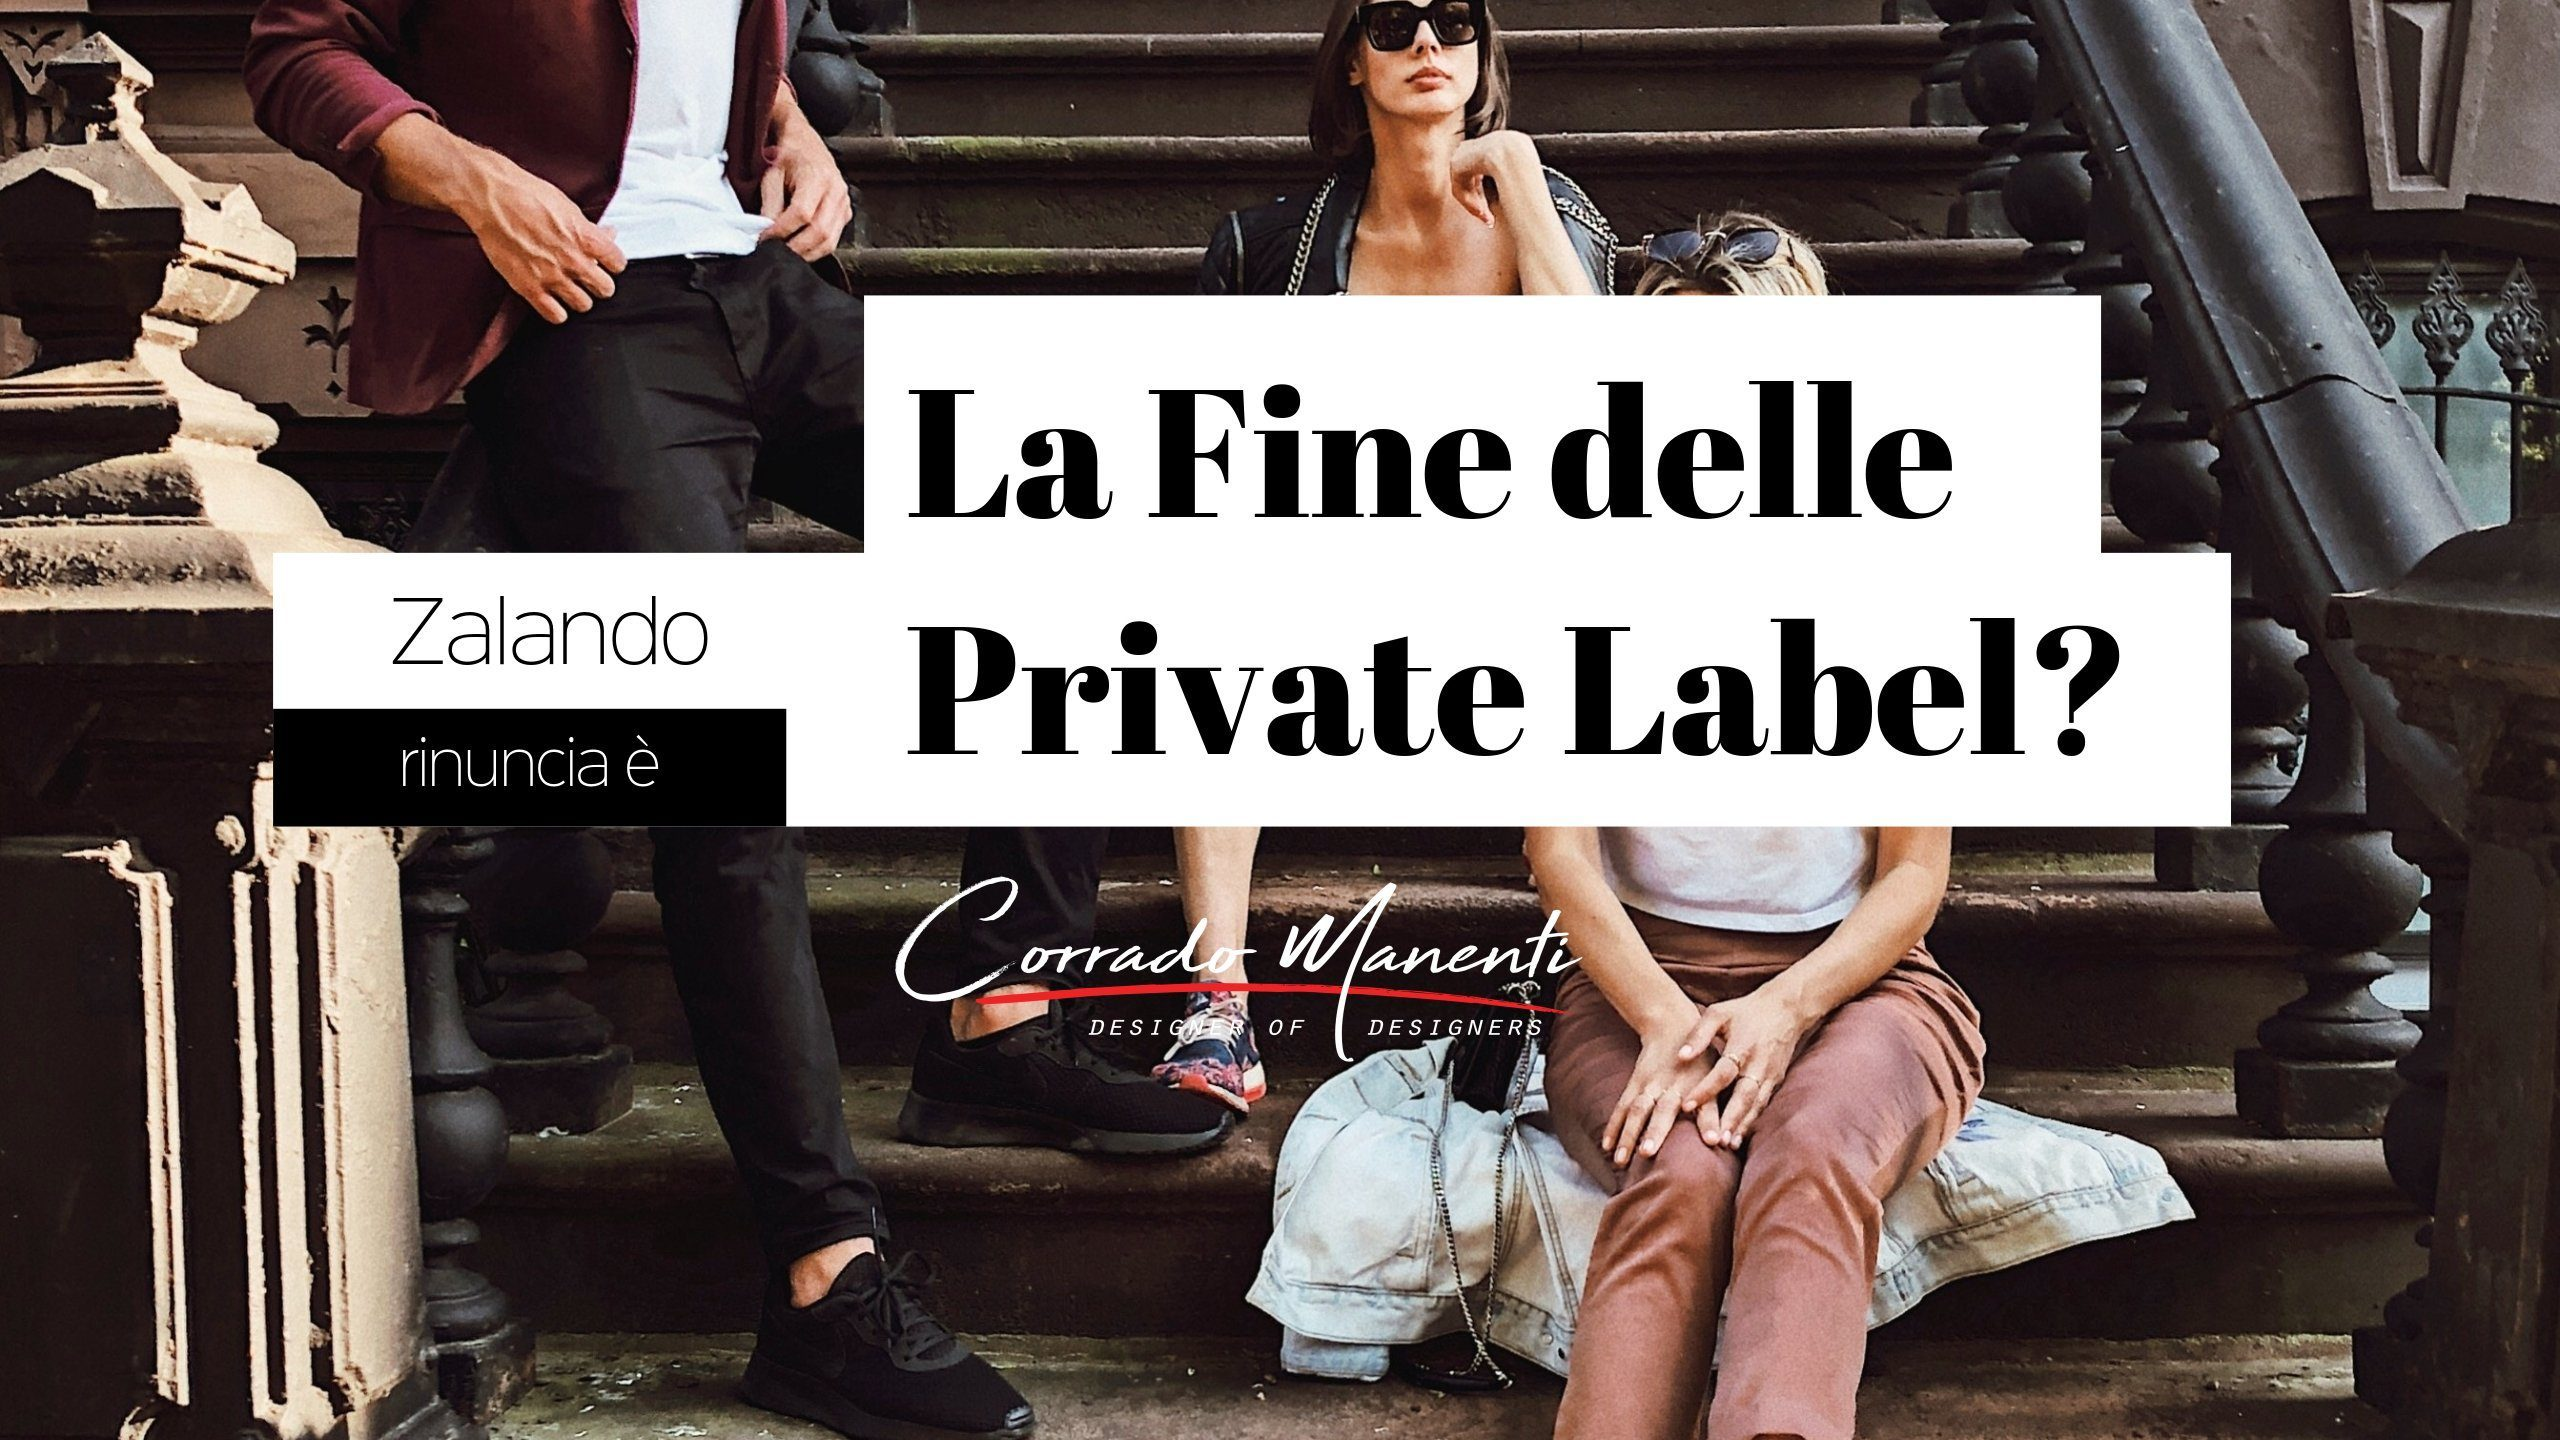 Corrado Manenti articolo Zalando private Label